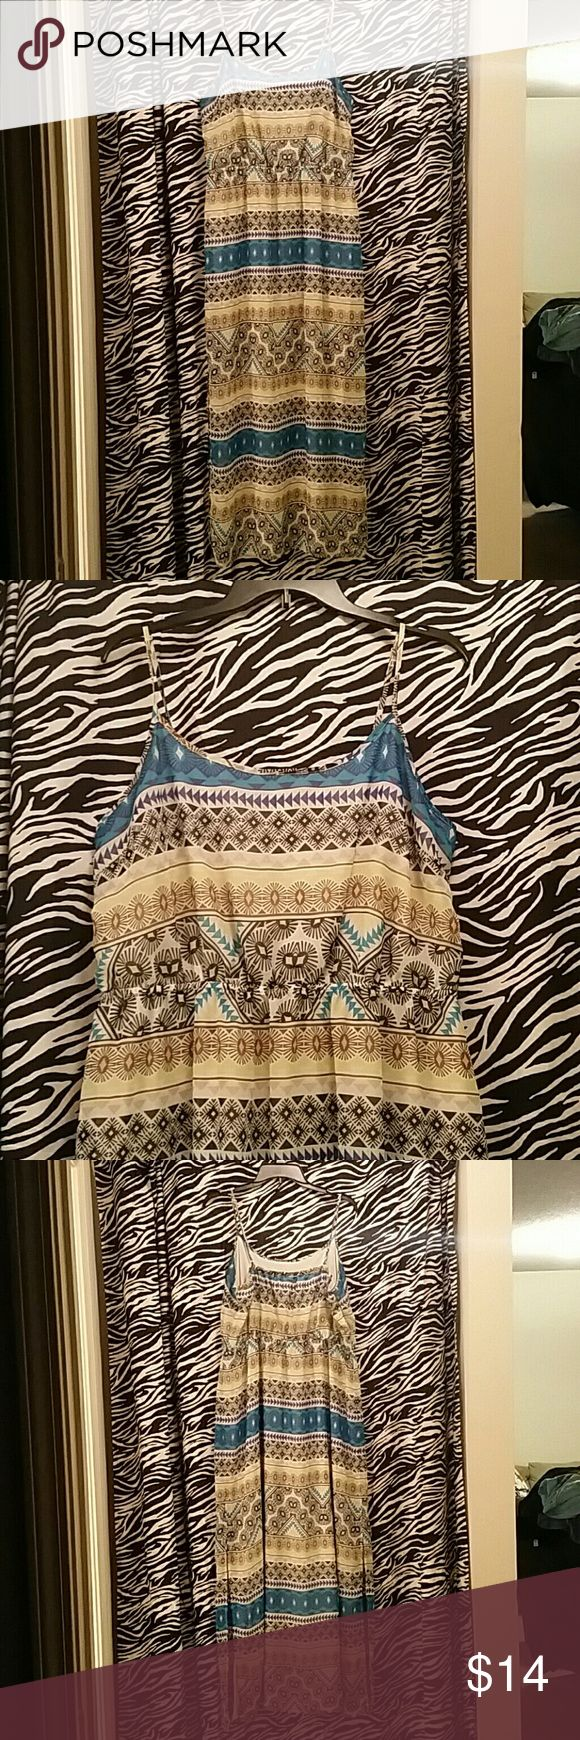 Old Navy Maxi Dress Like new maxi dress from old navy. Cool spring colors in an aztec pattern, a slit on each side of the dress. Old Navy Dresses Maxi